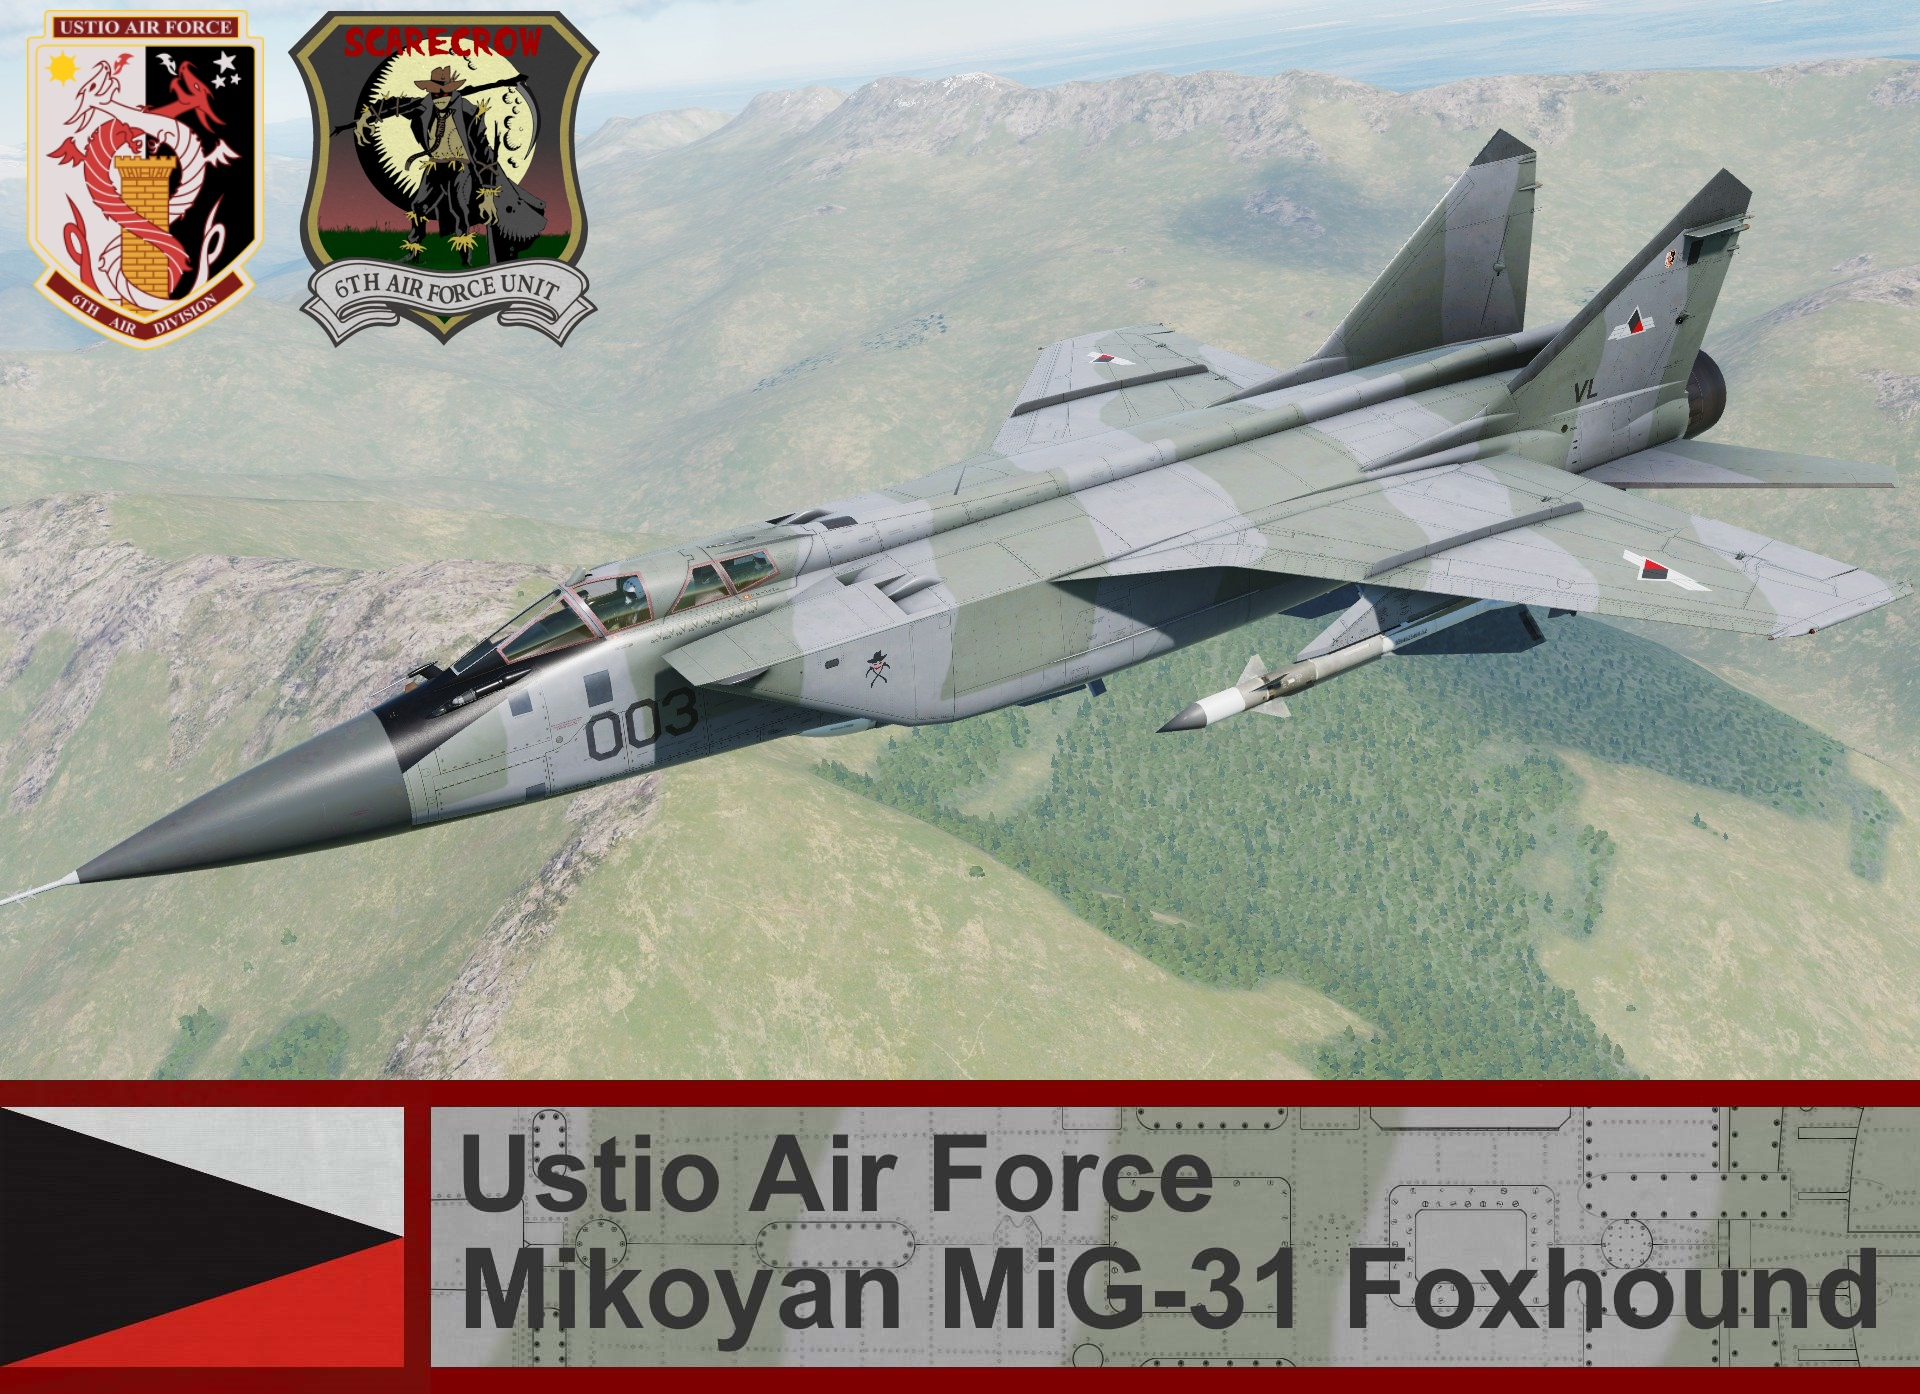 Ustio Air Force MiG-31 Foxhound - Ace Combat Zero (6th AFU)